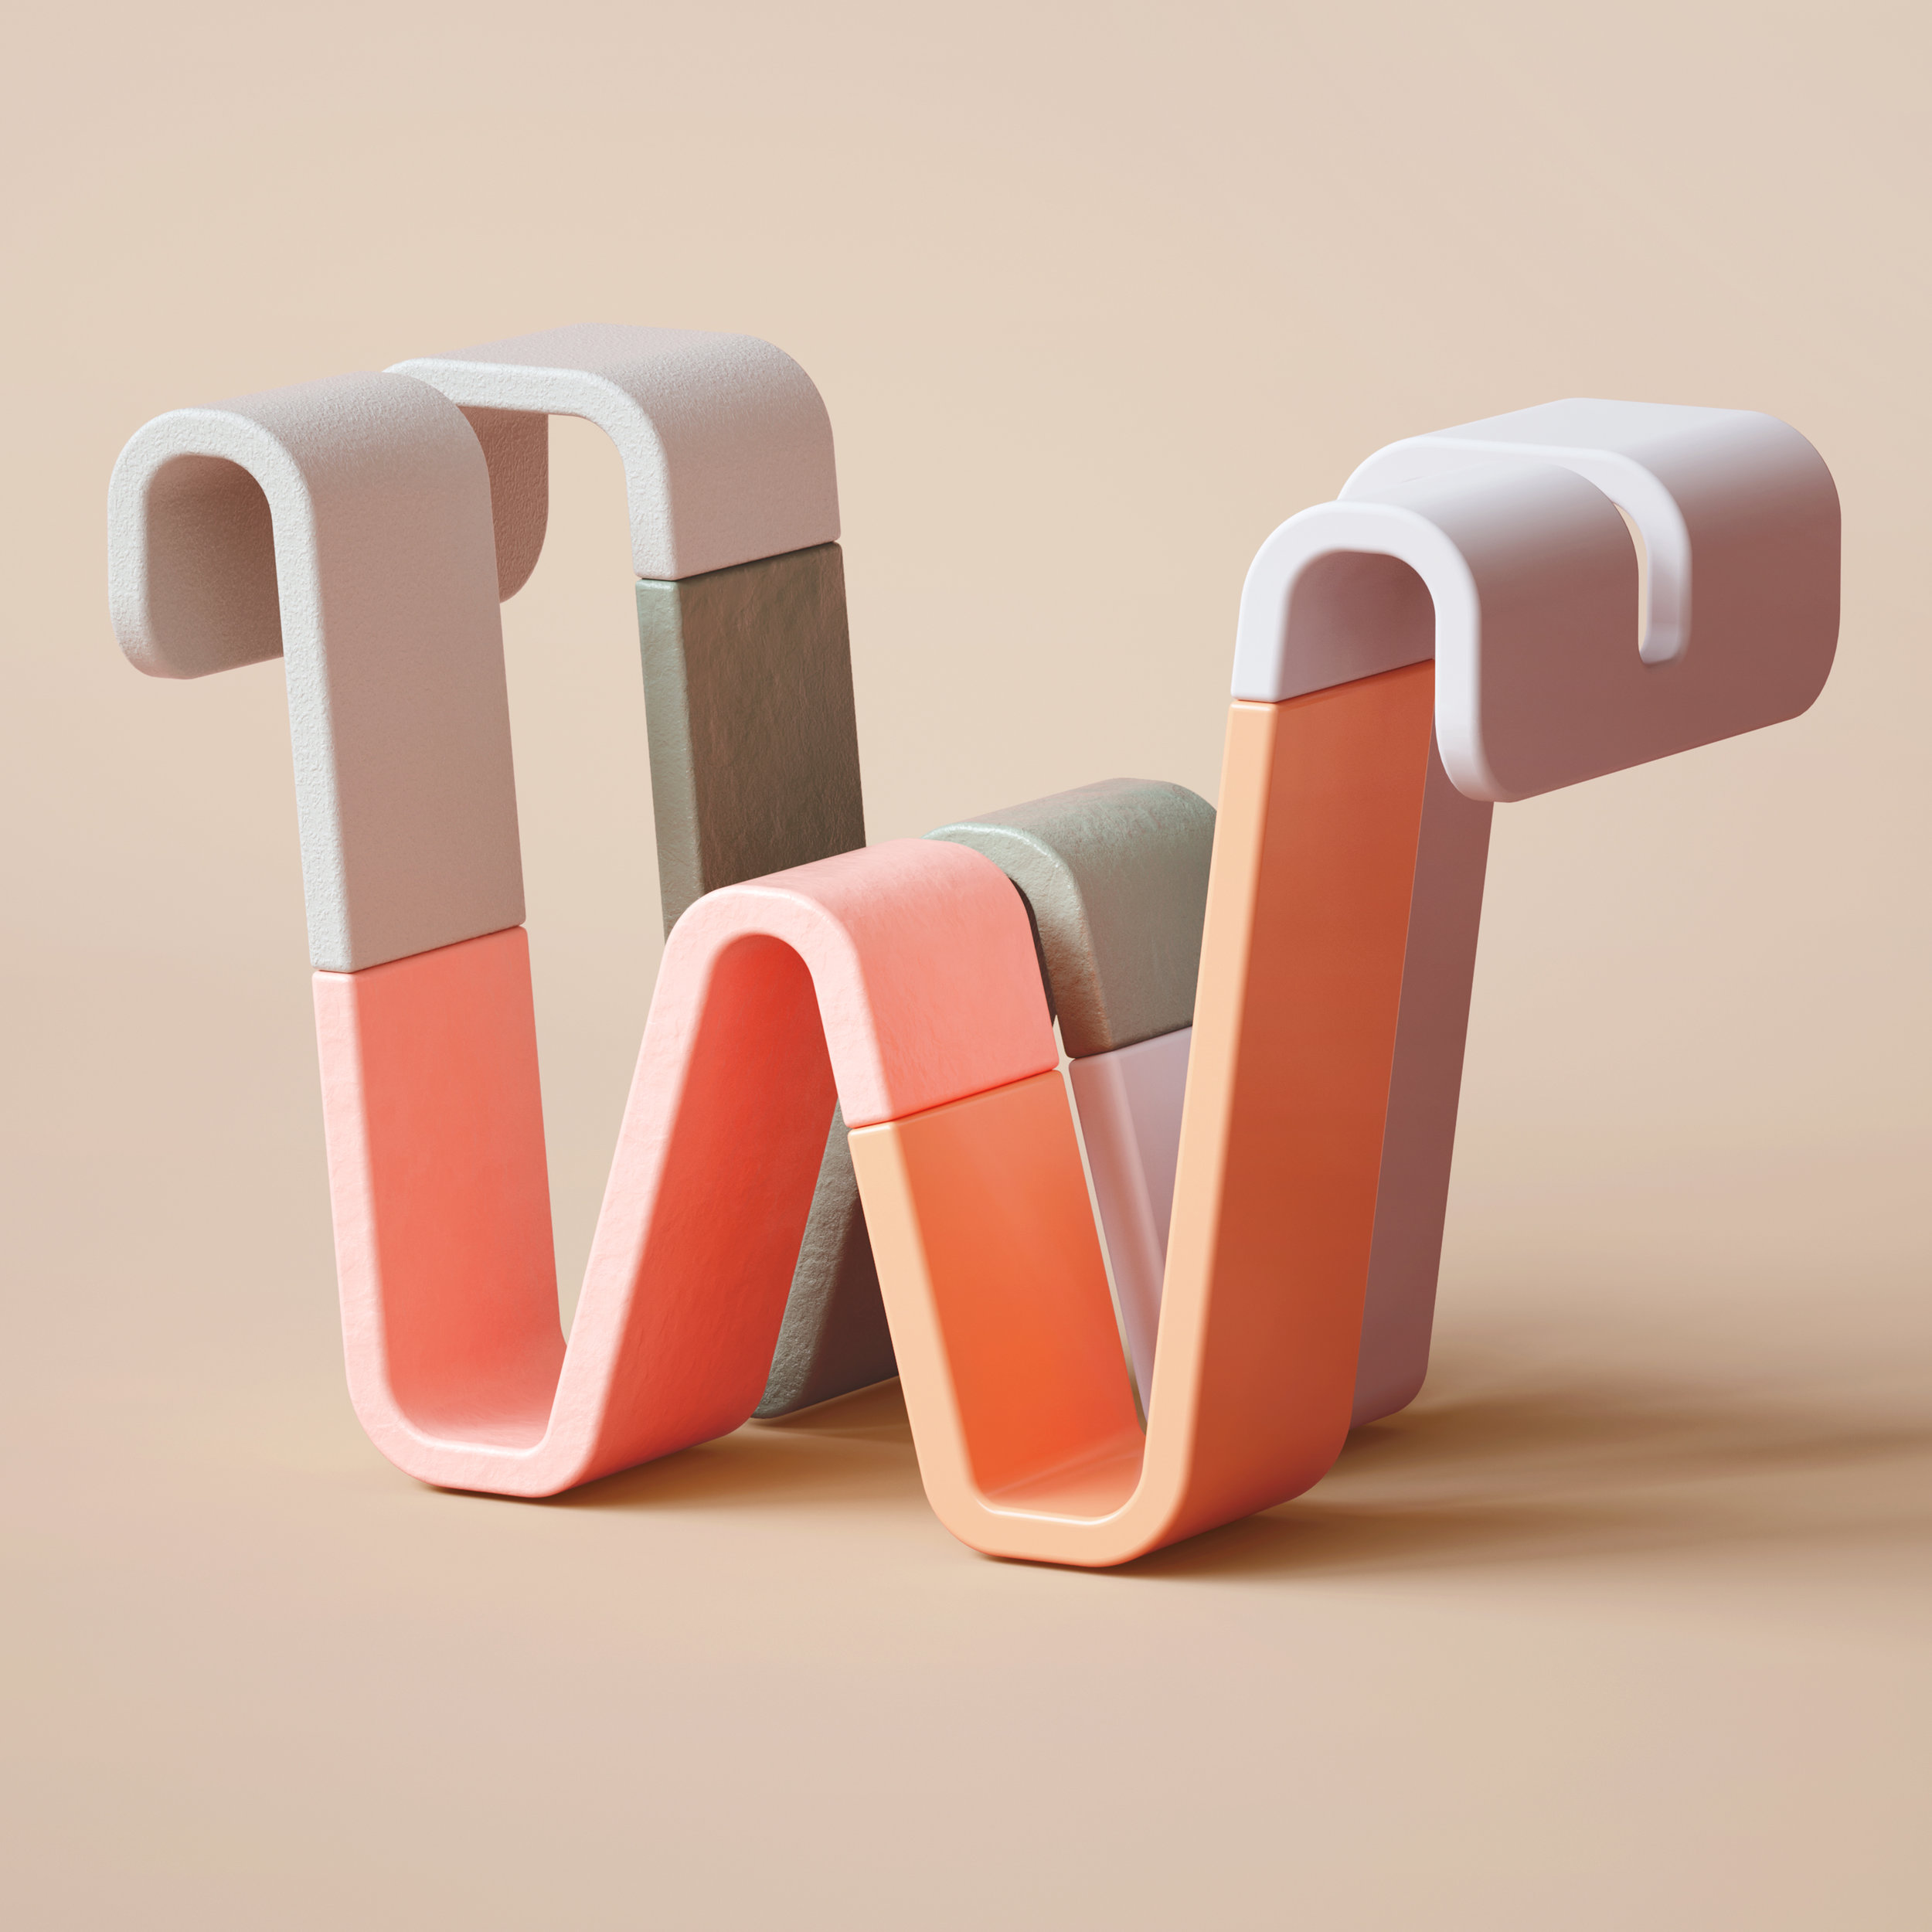 36 Days of Type 2019 - 3D Typeform letter W visual.